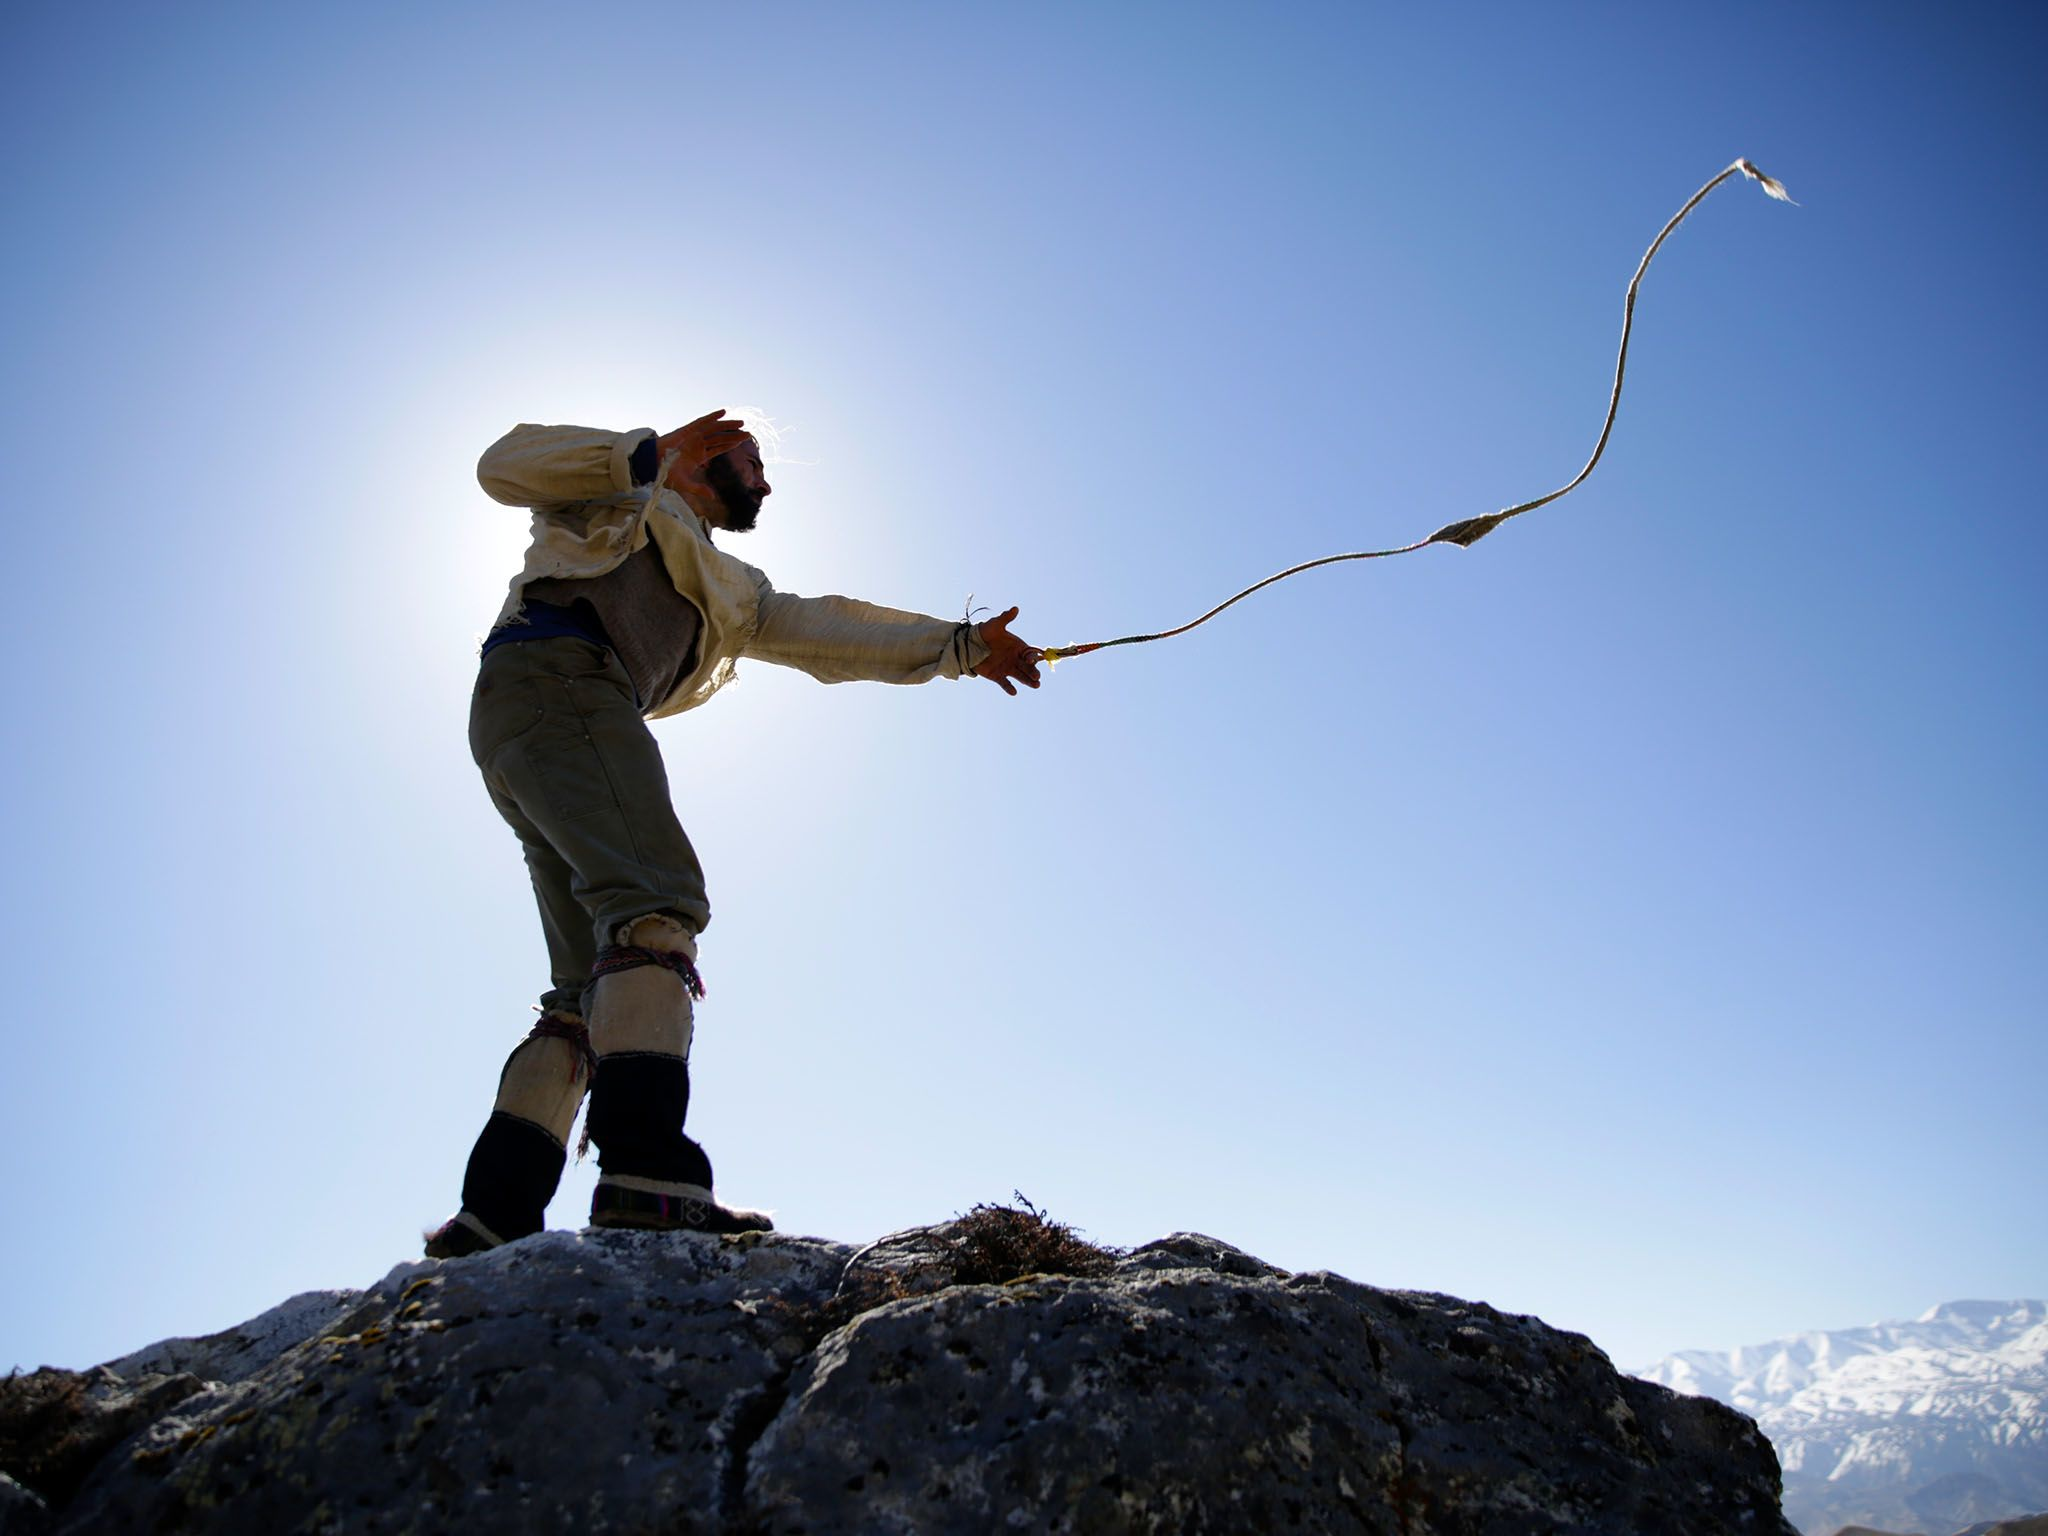 Mustang, Nepal: Hazen practicing slingshot with the sun behind him. This image is from Primal... [Photo of the day - January 2016]